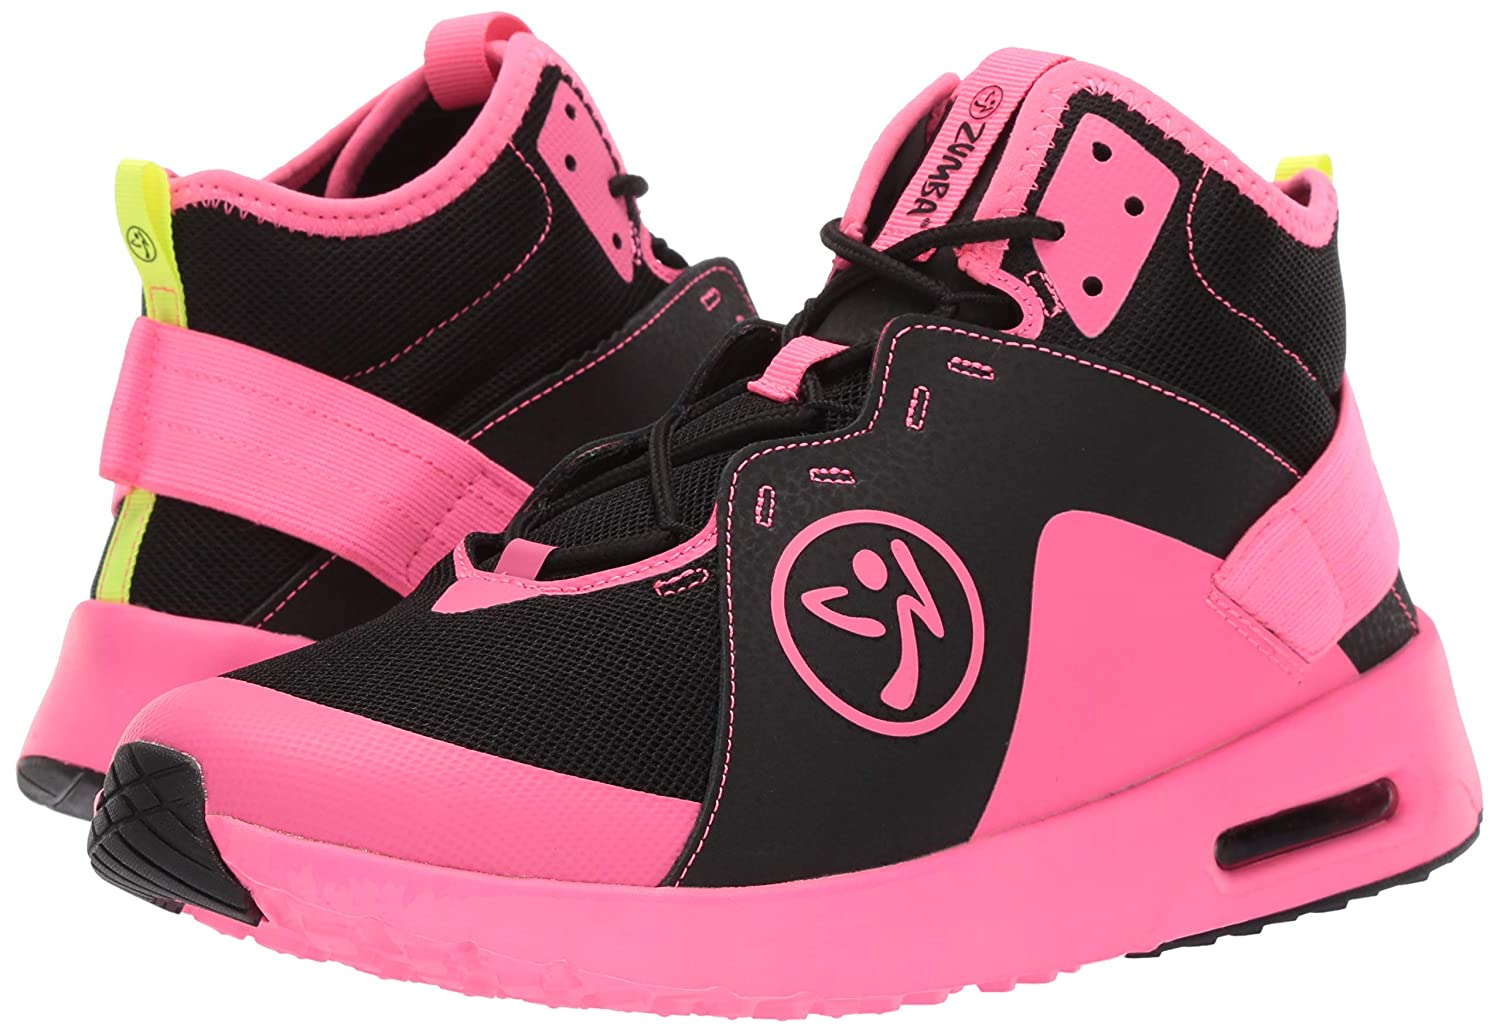 Zumba Womens Womens Air Classic Athletic Dance Workout with Max Impact Protection Sneaker Dance Shoe